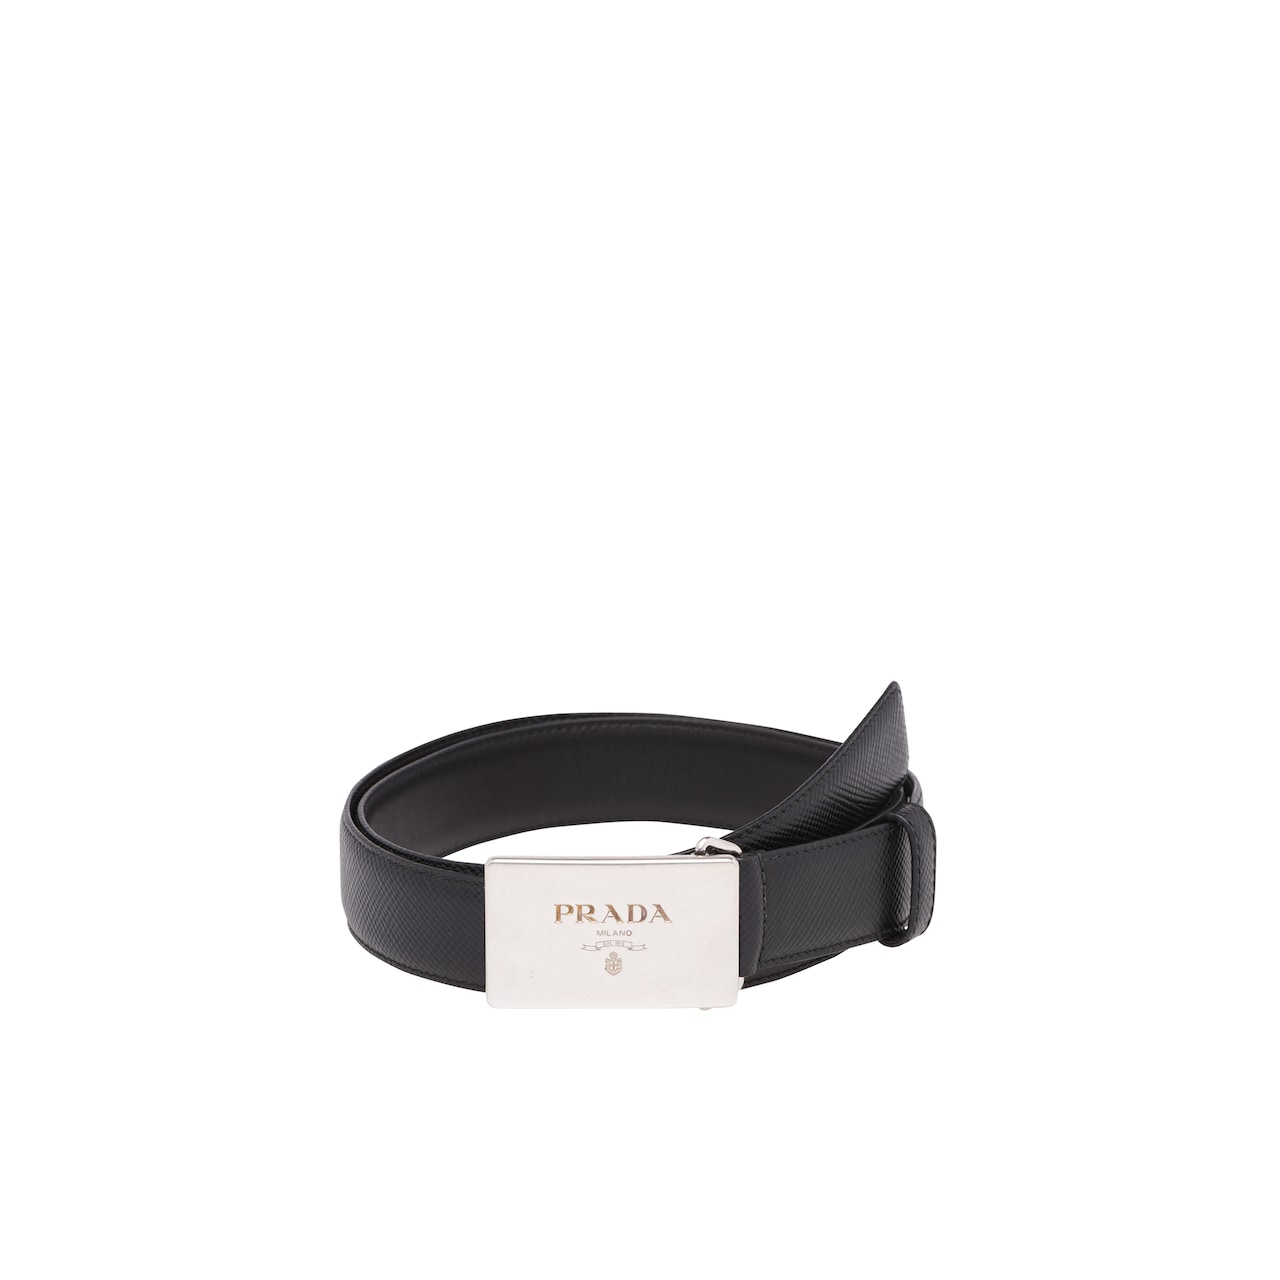 Leather Cuir Saffiano Cuir Leather Belt